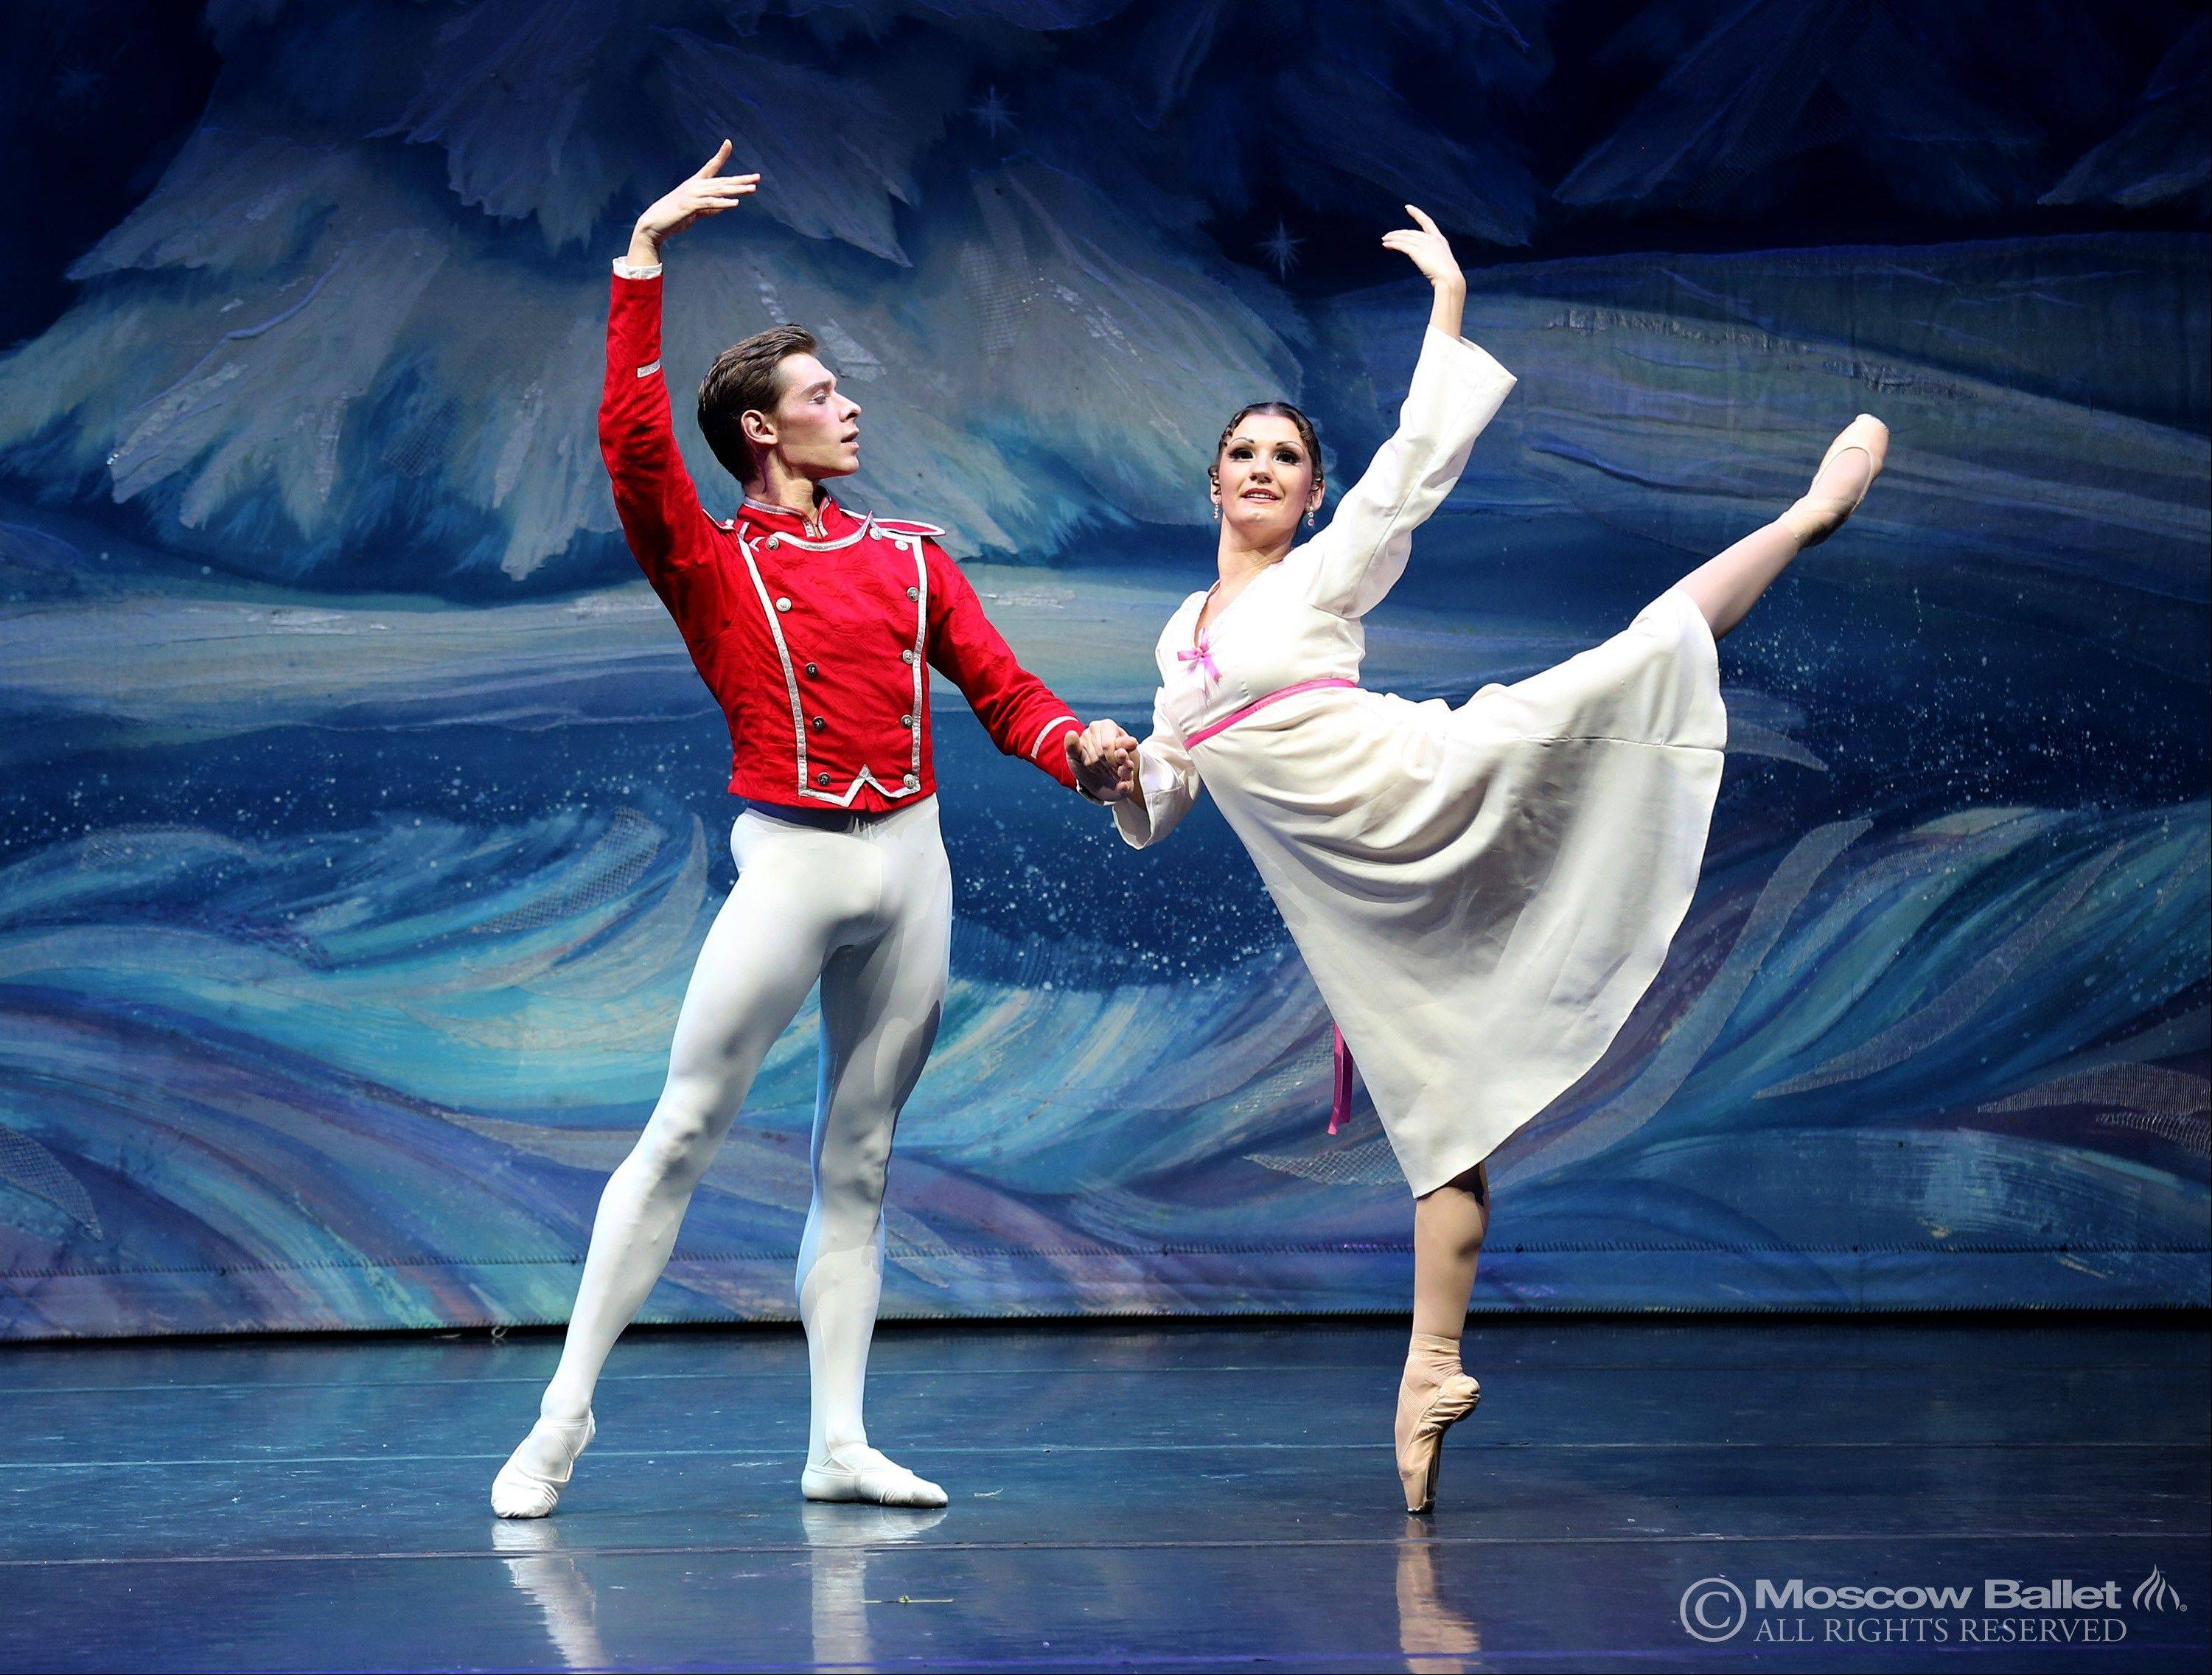 "Masha (Olga Kifyak) and the Nutcracker Prince (Viktor Shcherbakov) dance against a snowy backdrop in a previous edition of Moscow Ballet's touring ""Great Russian Nutcracker."" The production returns on Sunday, Dec. 8, to the Rosemont Theatre."